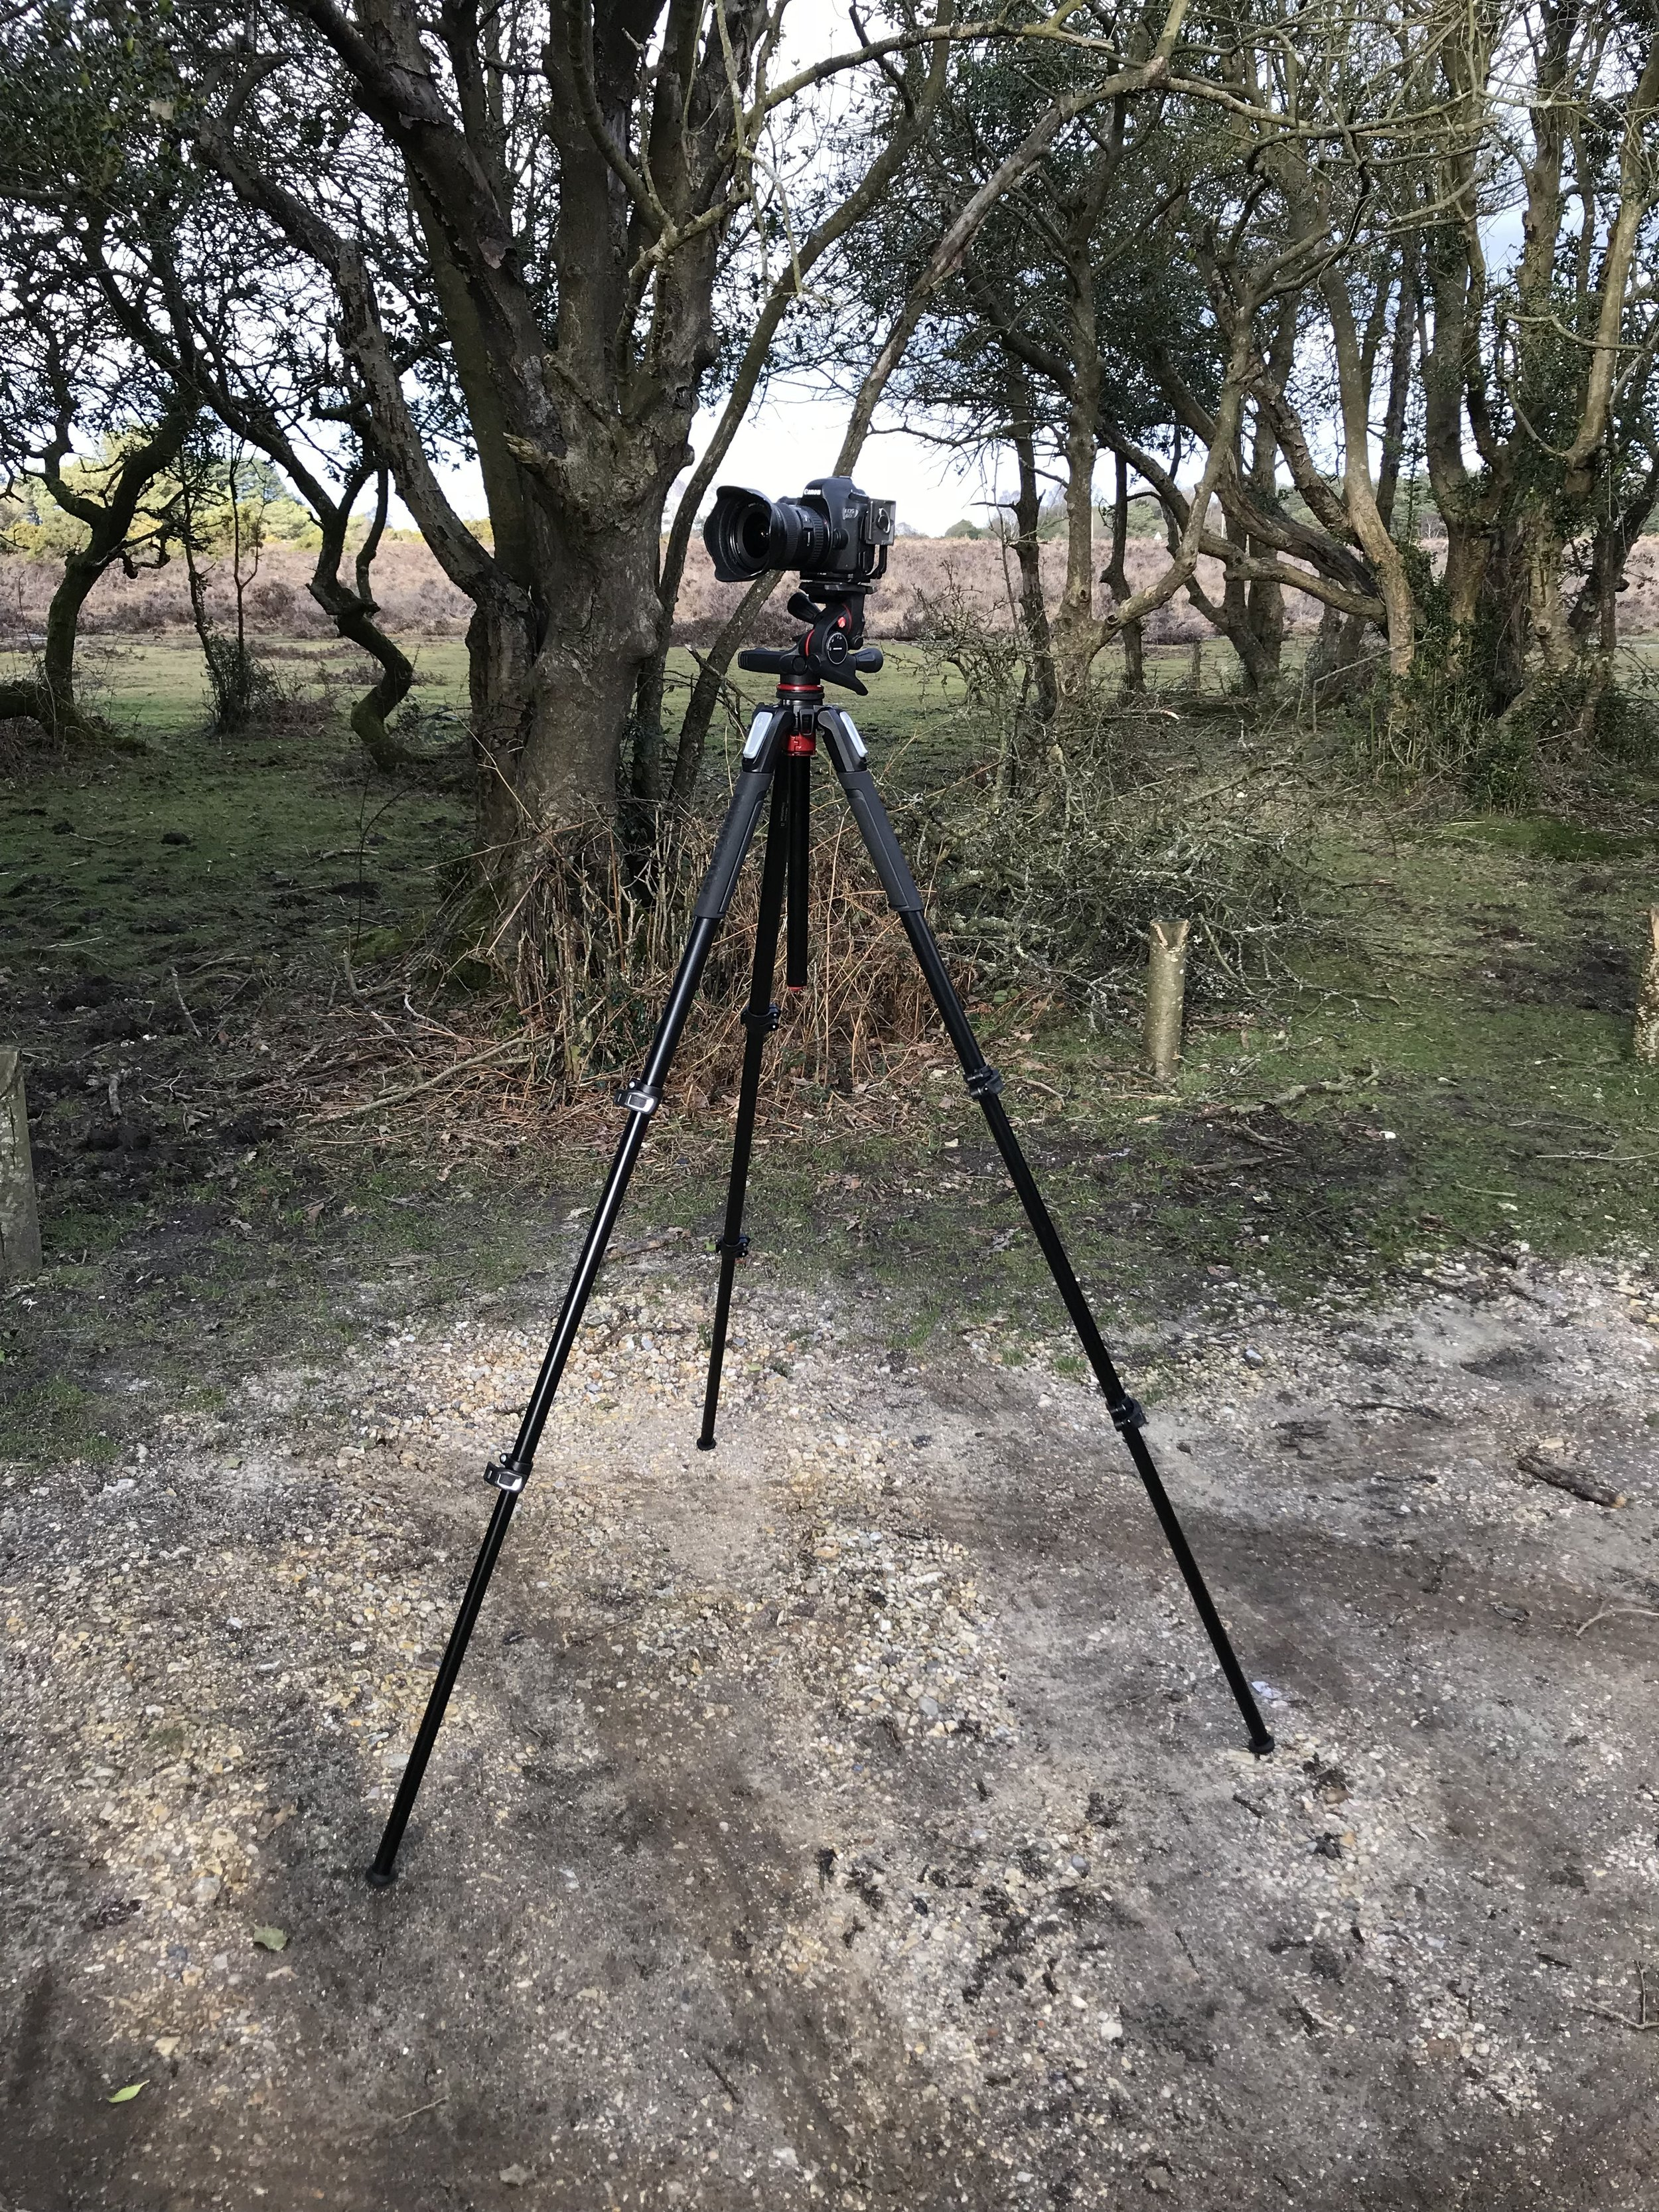 My Canon 6D on my Manfrotto 055 tripod